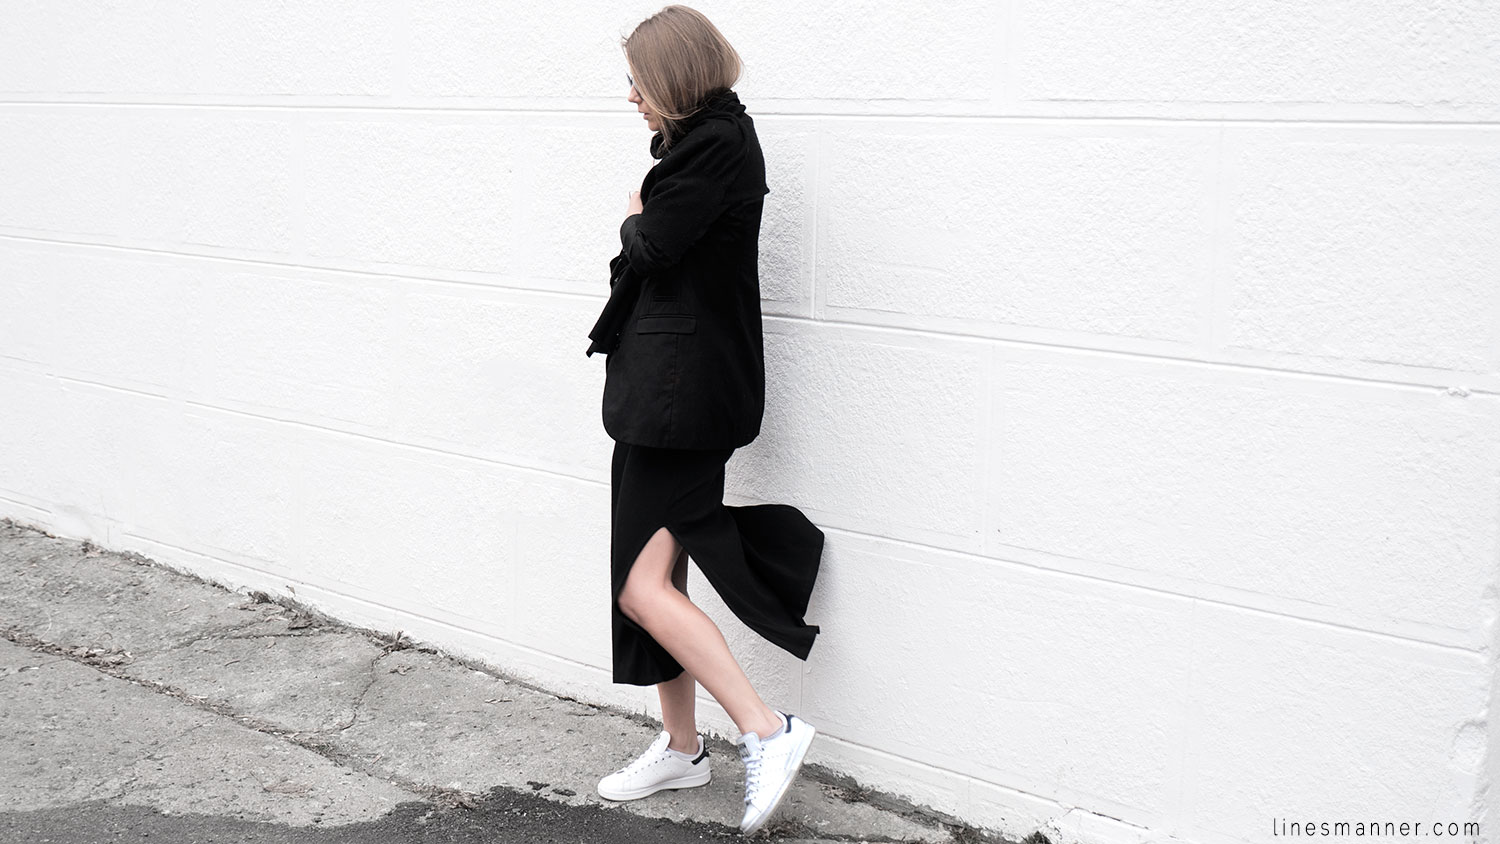 Lines-Manner-Black-Relaxed-Tone_on_Tone-Monochrome-Minimal-Sophistication-Comfort-Modern-Simplicity-Casual-Sporty_Luxe-Slit_Dress-Thrid_Form-Blazer-Essentials-Details-Basics-Timeless-Verstatile-Staple-Wardrobe-Sleek-Clean_Lines-All_Black_Everything-4